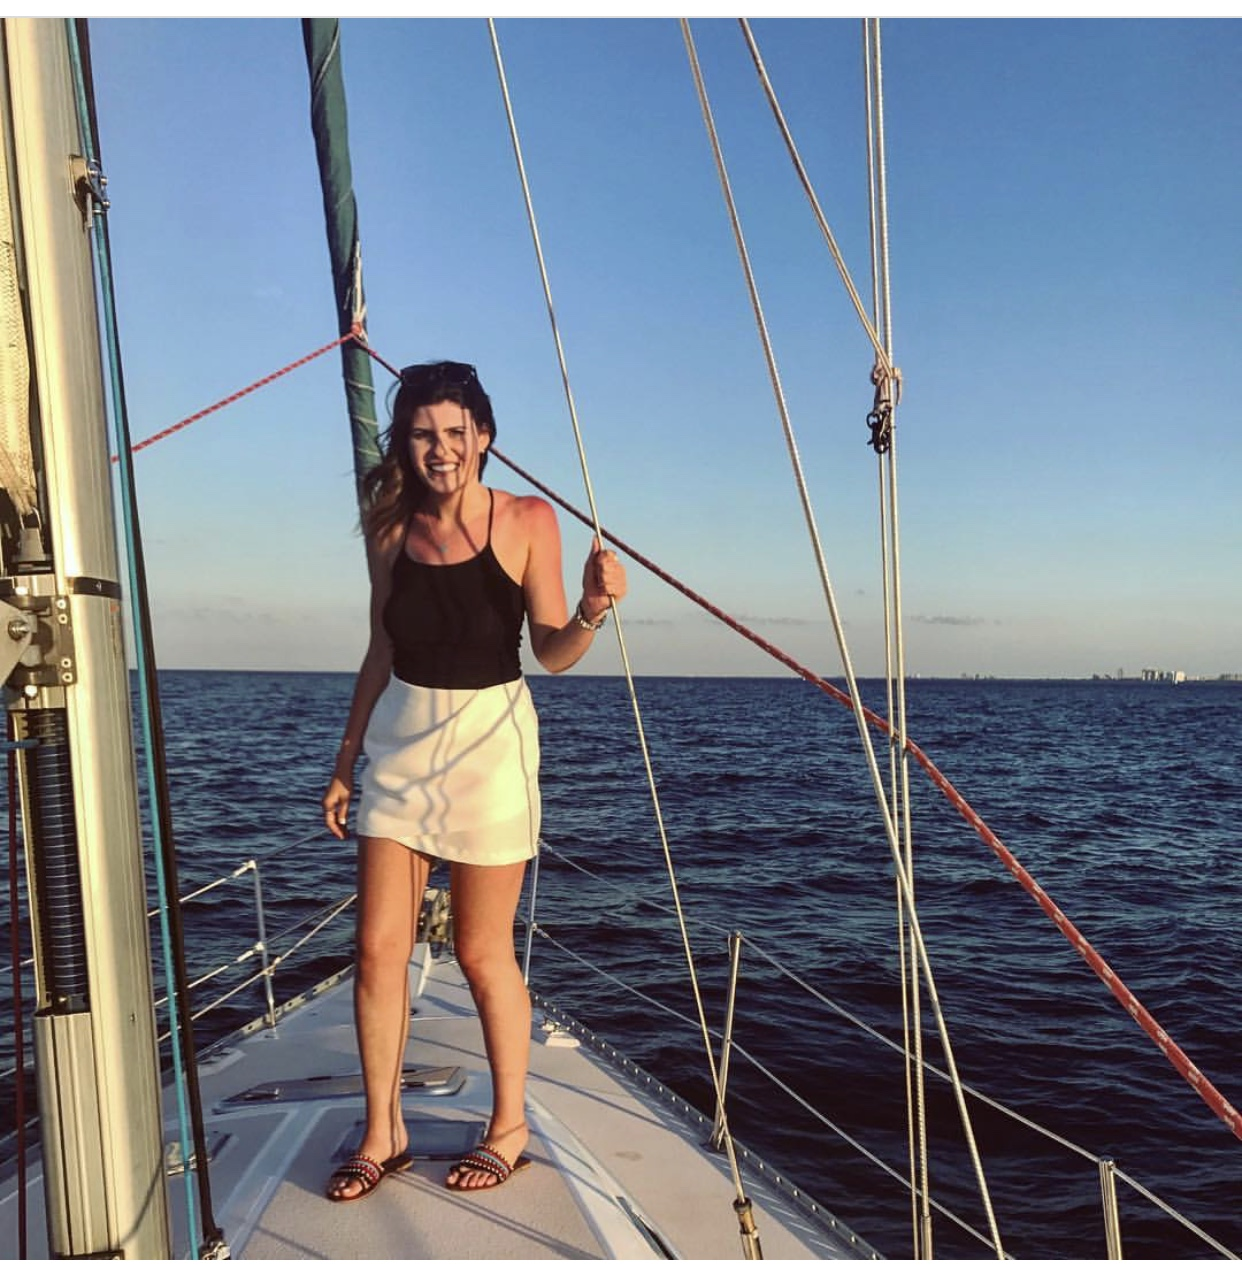 chicago sailing  - one thing i try to do every summer is go sailing ⛵️i do not have a sail boat, nor do i know how to sail, luckily chicago sailing exists! you can charter one with a qualified captain, they also do rentals if you know how to take to sea, and they give lessons! may be signing up for those next! check out chicago sailing!  -xoxojackie